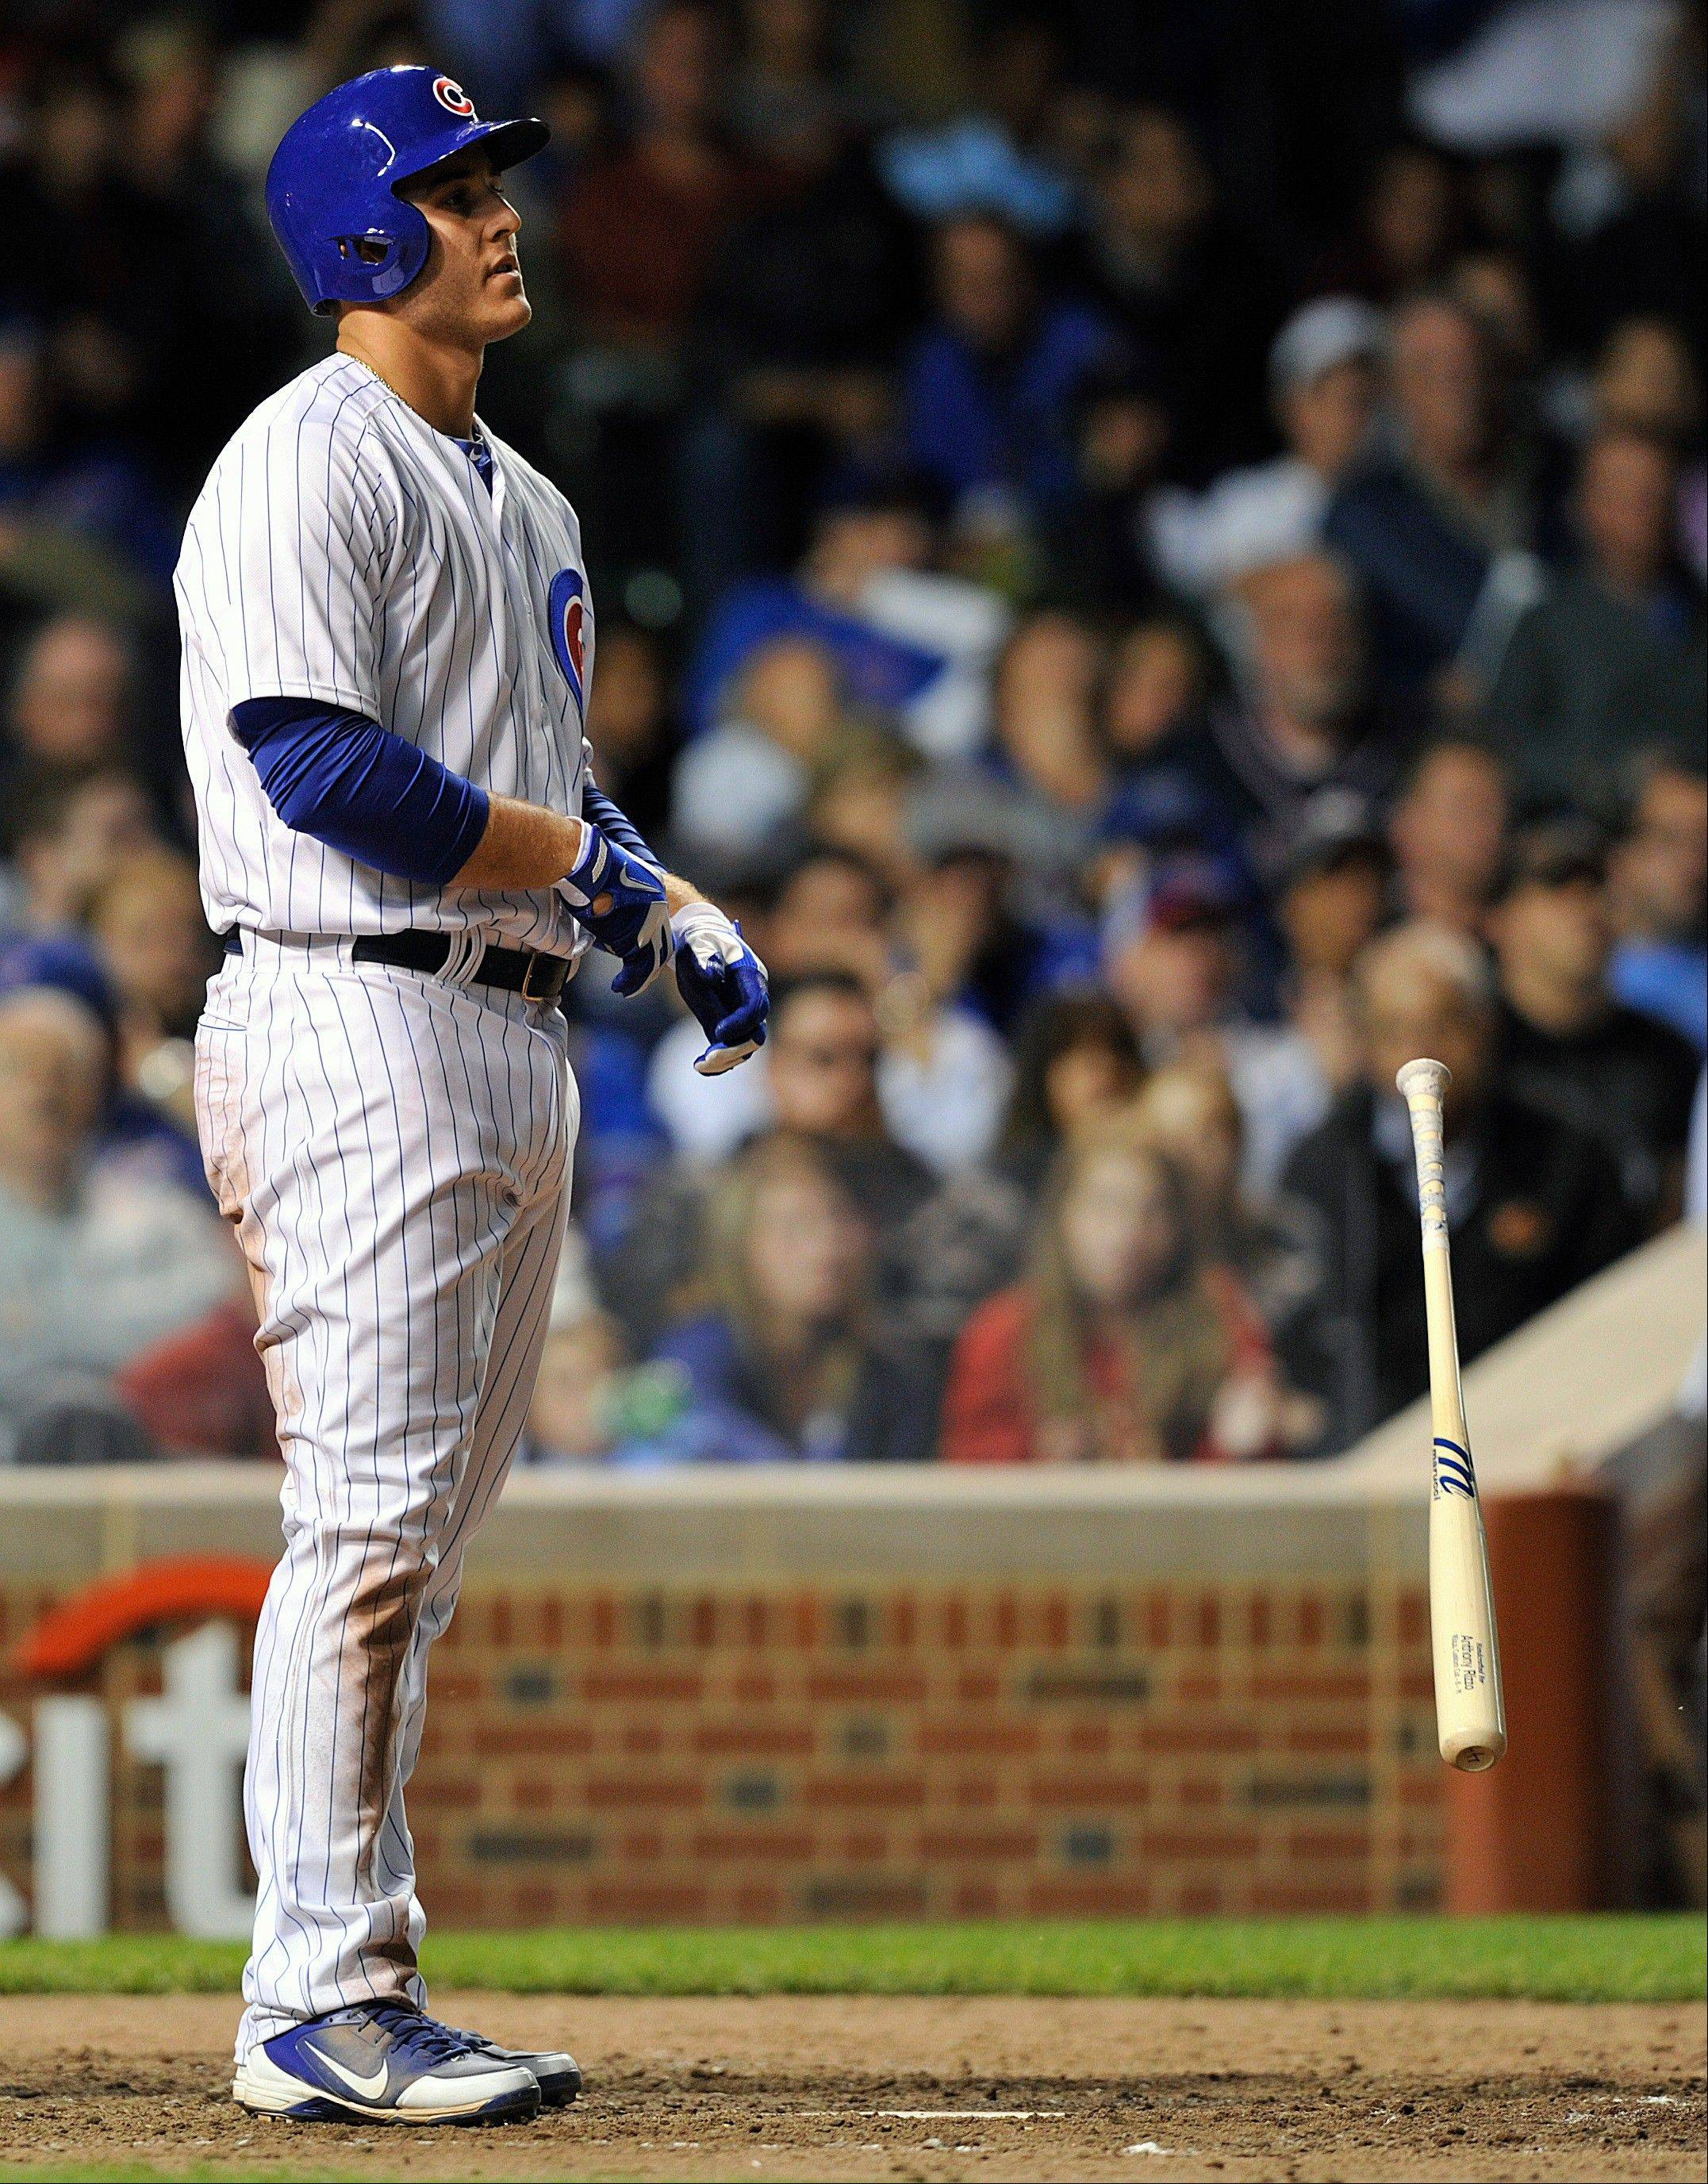 The Cubs' Anthony Rizzo is hitting just .204 since the all-star break.